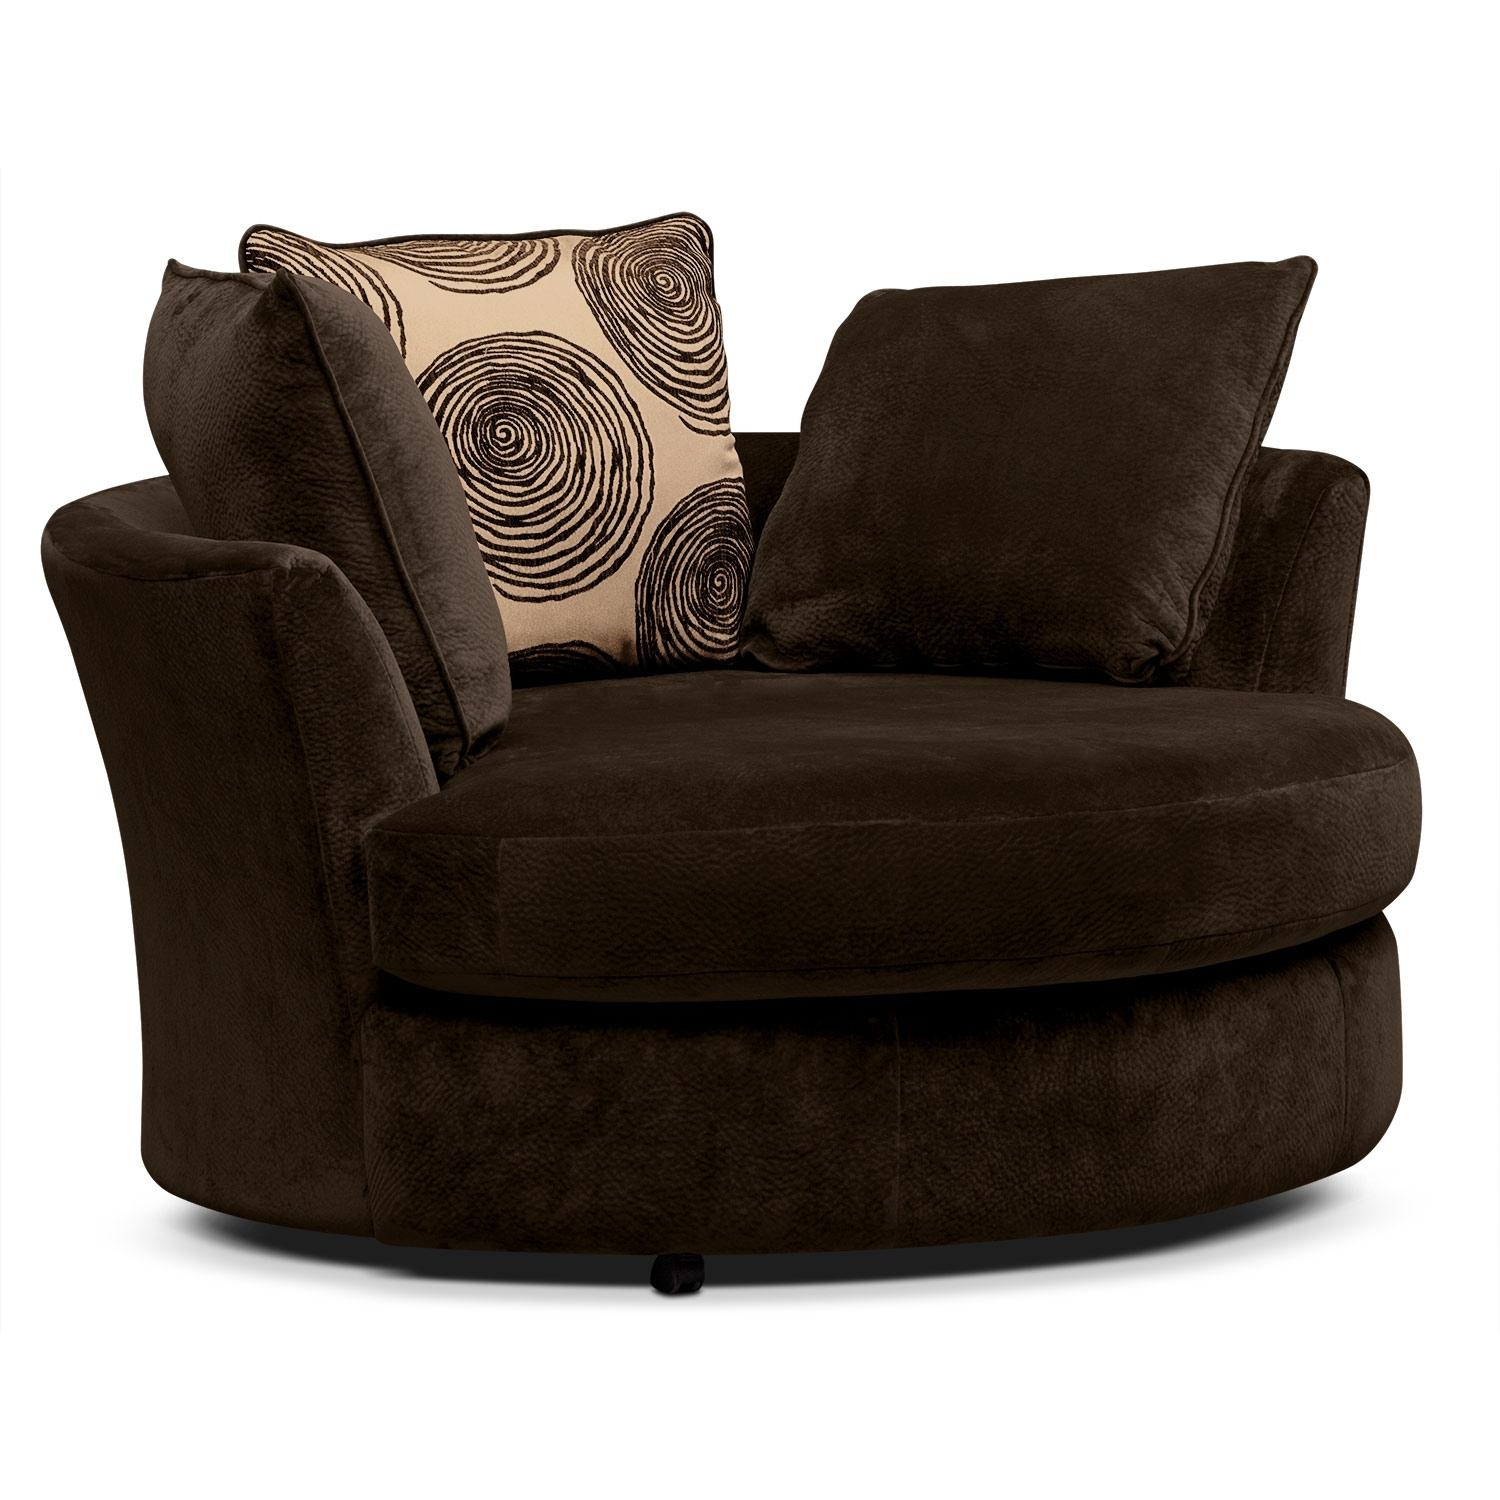 Round Sofa Chair Living Room Furniture | Raya Furniture Regarding Round Sofa Chair Living Room Furniture (View 4 of 20)